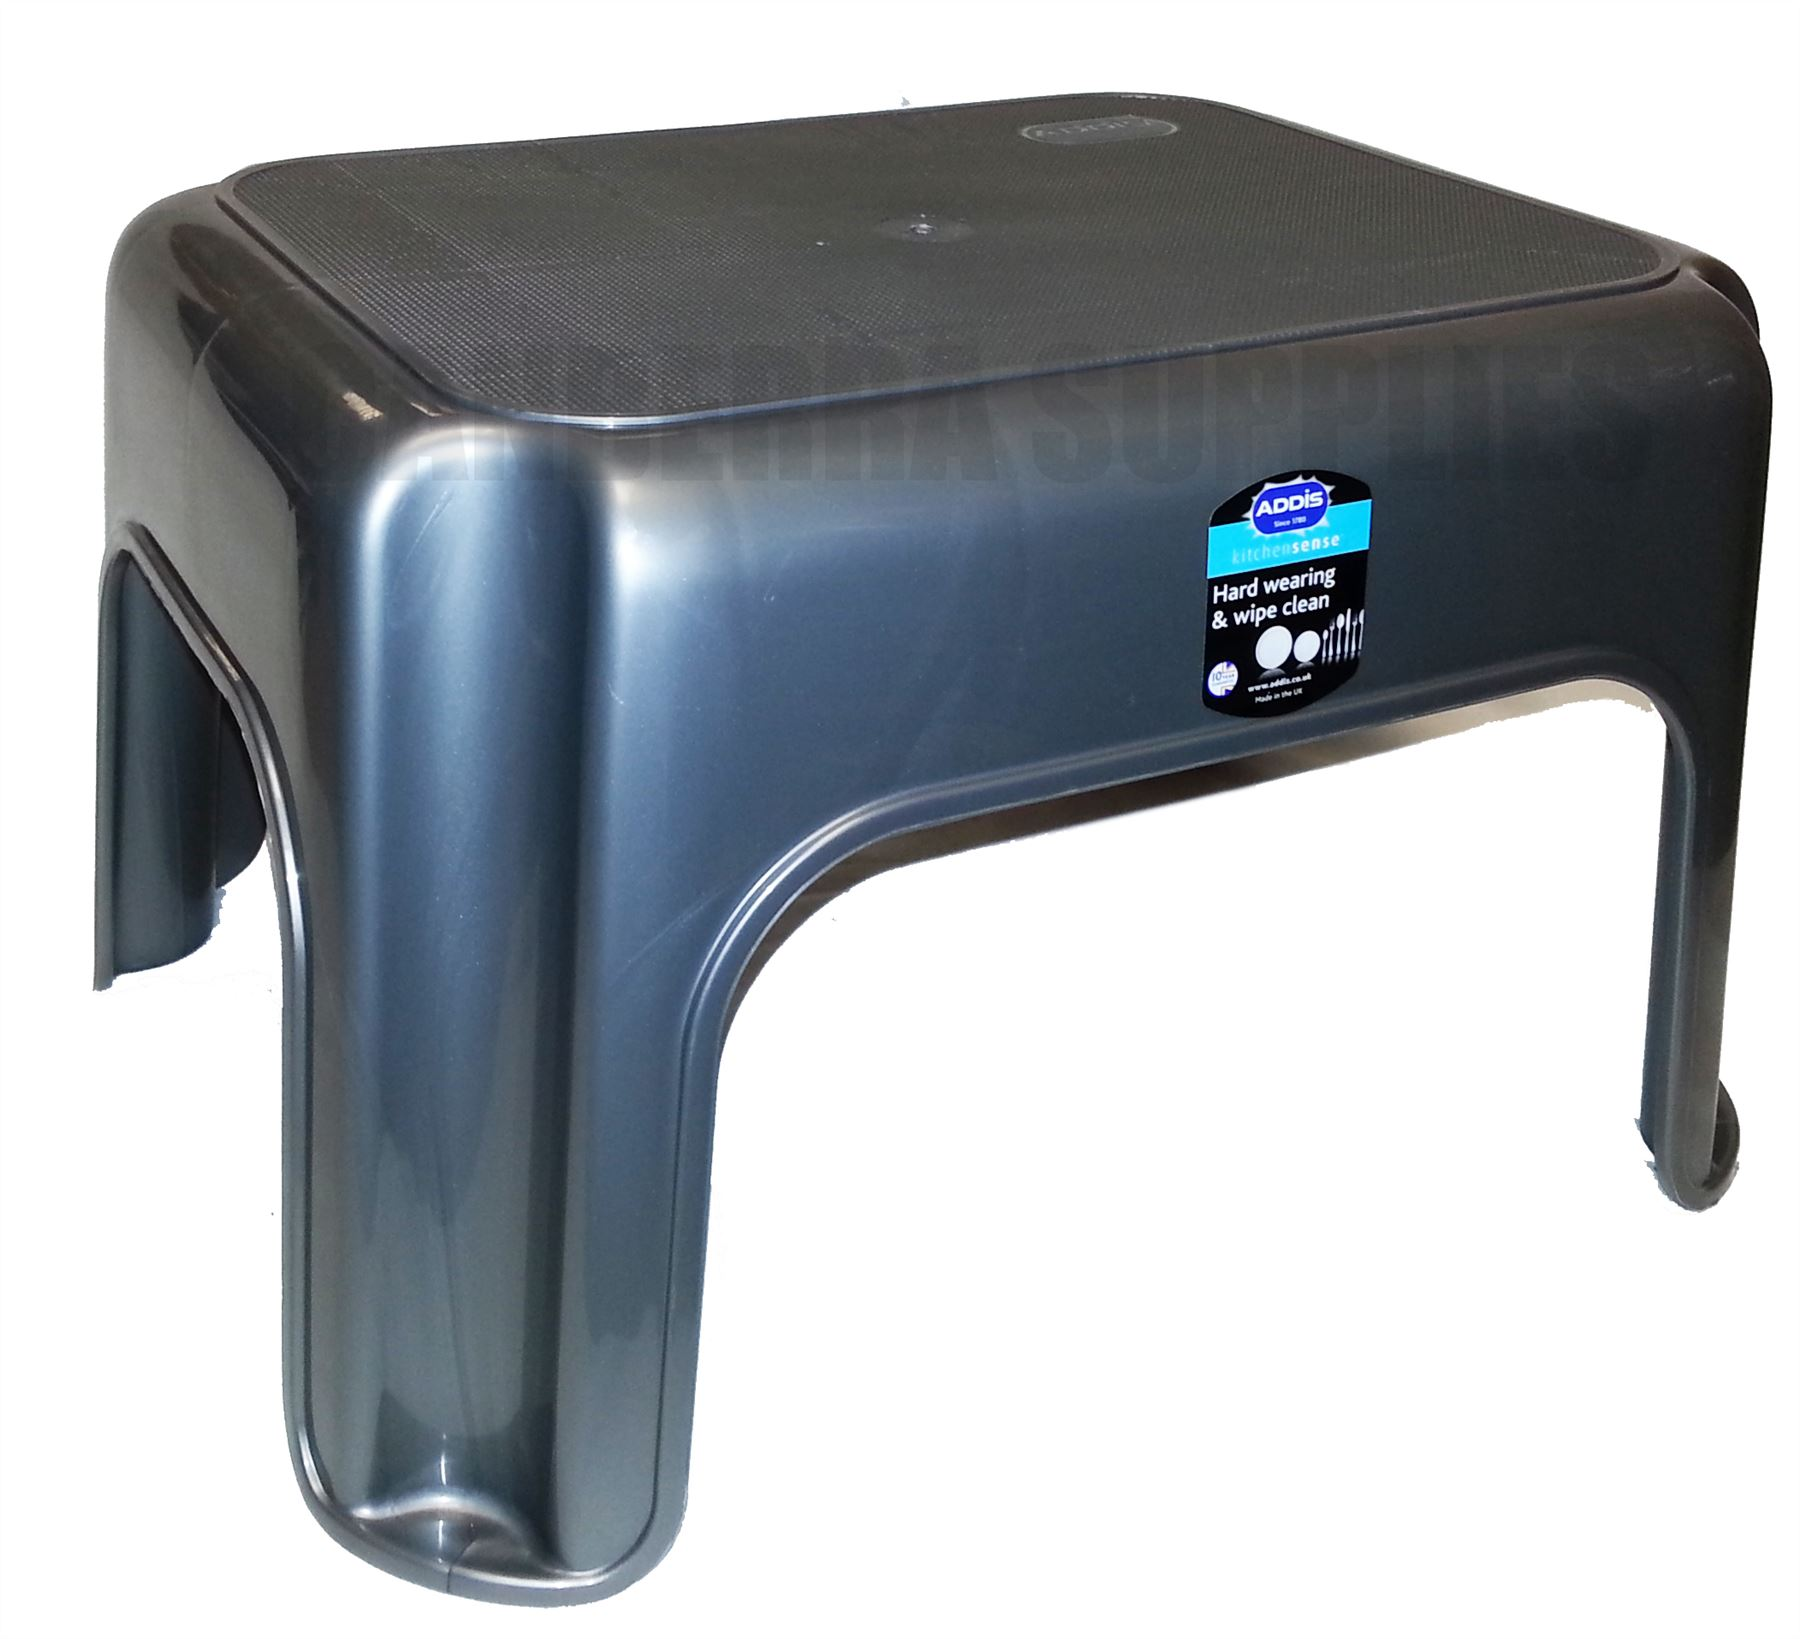 ADDIS KITCHEN GARAGE BATHROOM STEP STOOL HEAVY DUTY PLASTIC - GREY ...